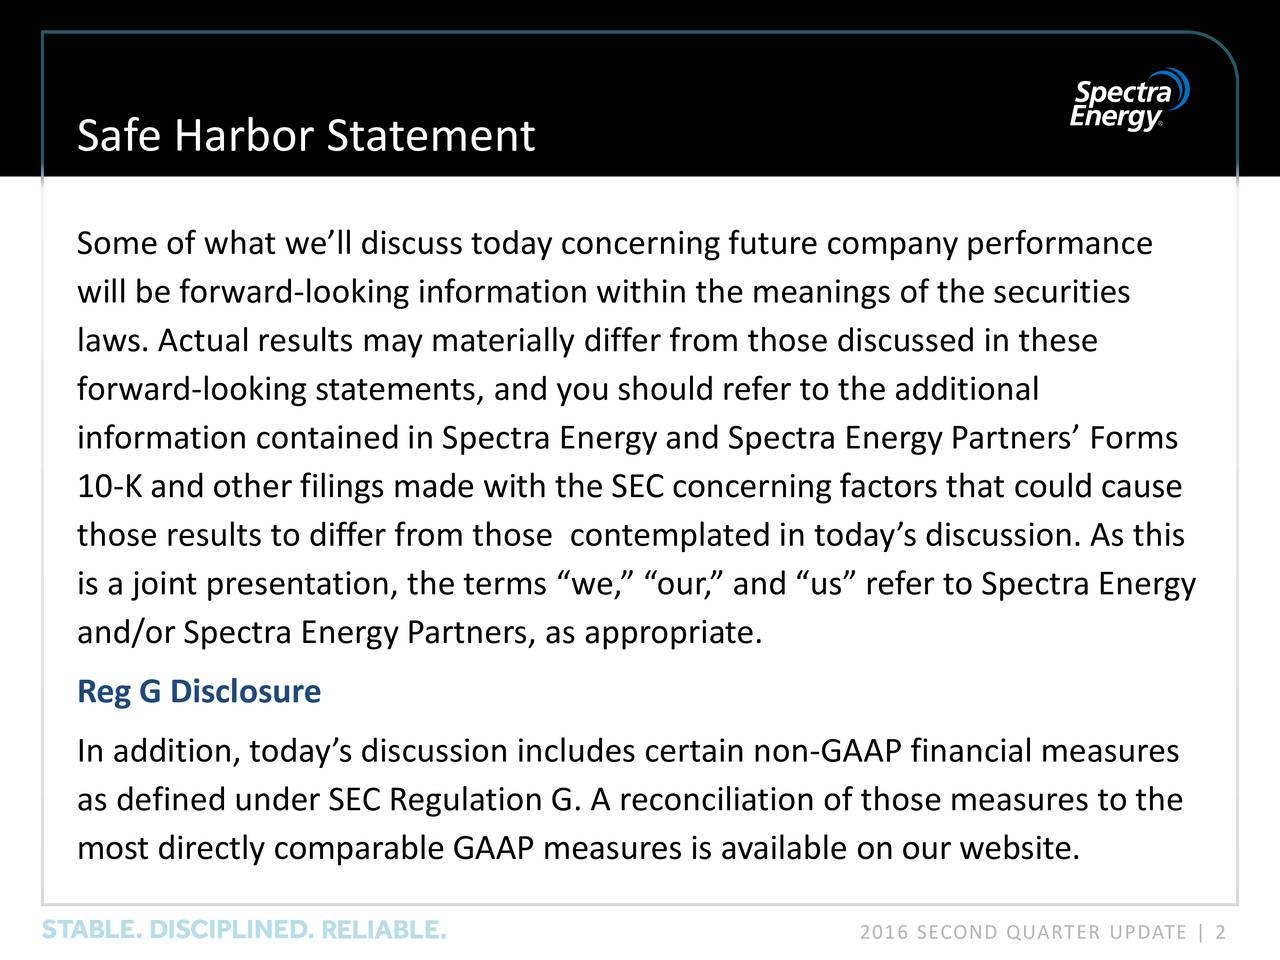 Some of what well discuss today concerning future company performance will be forward-looking information within the meanings of the securities laws. Actual results may materially differ from those discussed in these forward-looking statements, and you should refer to the additional information contained in Spectra Energy and Spectra Energy Partners Forms 10-K and other filings made with the SEC concerning factors that could cause those results to differ from those contemplated in todays discussion. As this is a joint presentation, the terms we, our, and us refer to Spectra Energy and/or Spectra Energy Partners, as appropriate. Reg G Disclosure In addition, todays discussion includes certain non-GAAP financial measures as defined under SEC Regulation G. A reconciliation of those measures to the most directly comparable GAAP measures is available on our website. 2016 SECOND QUARTER UPDATE   2